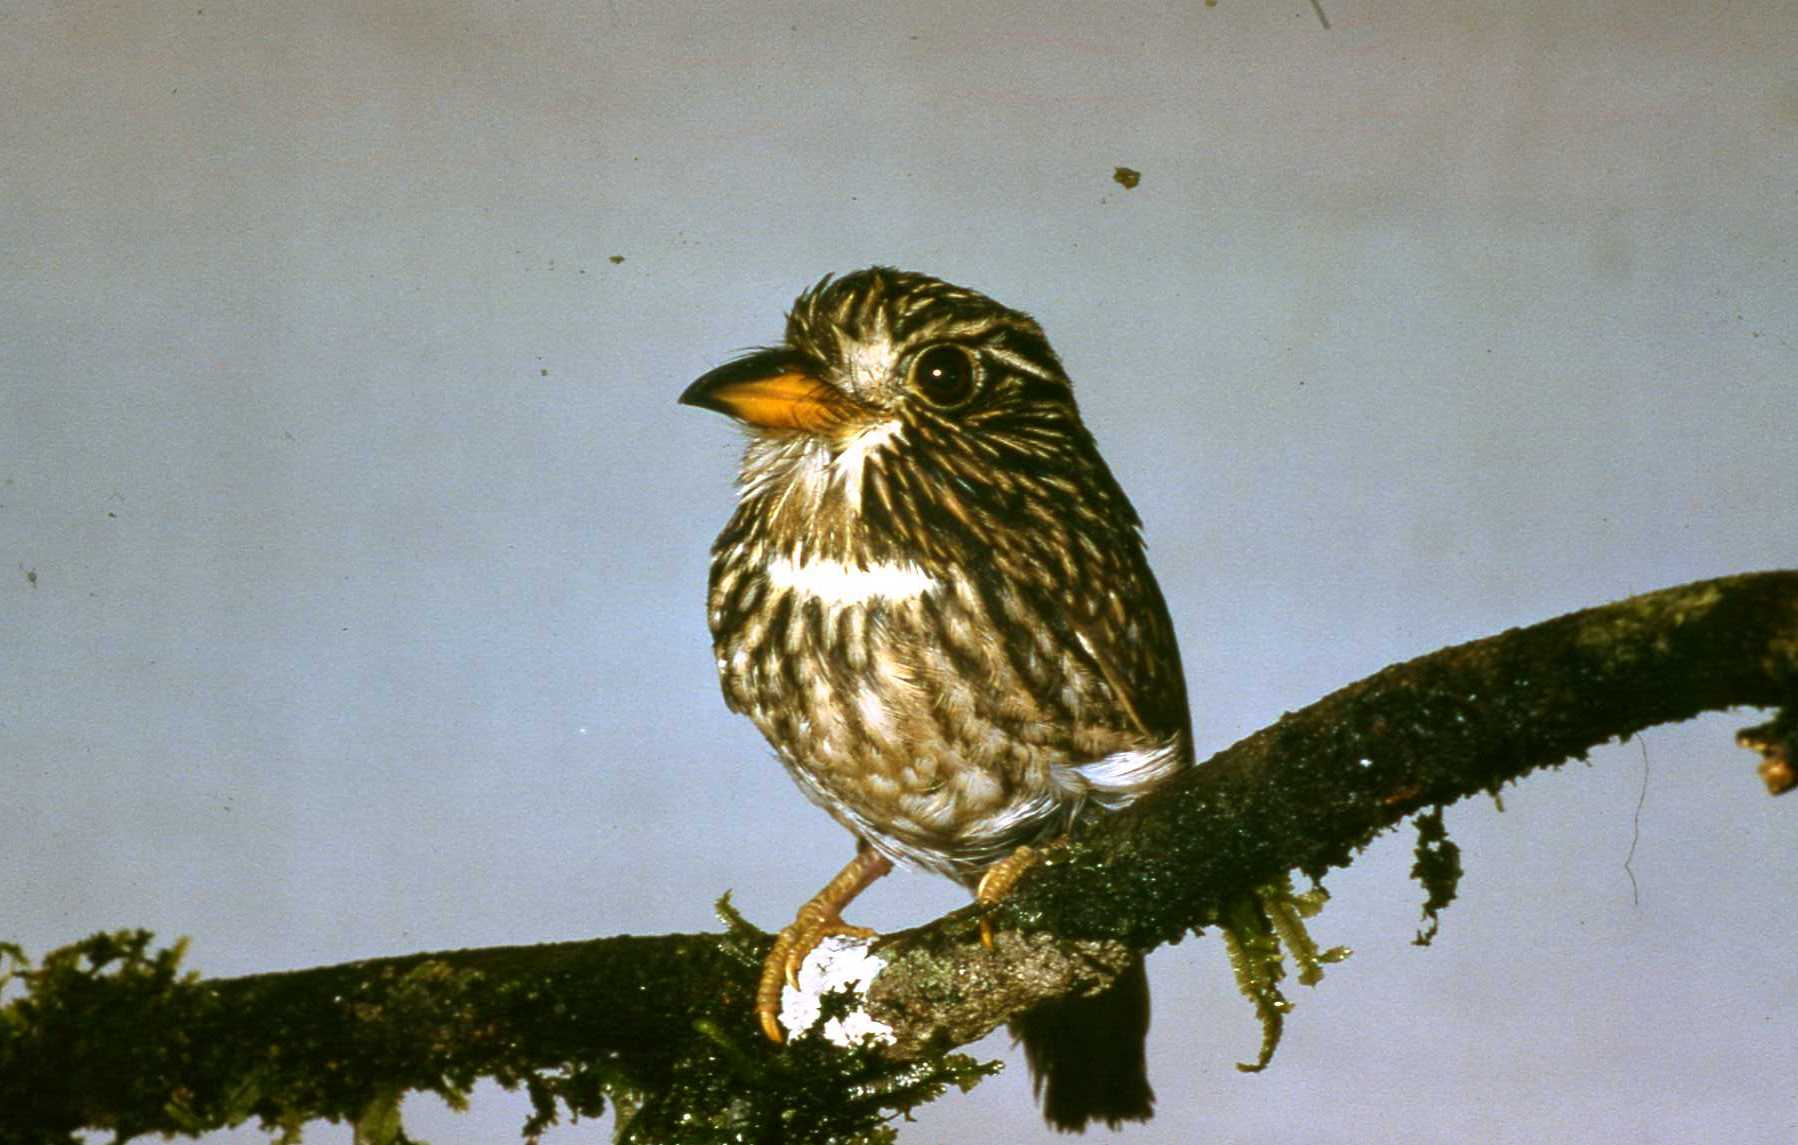 Scientific Name: White-chested Puffbird